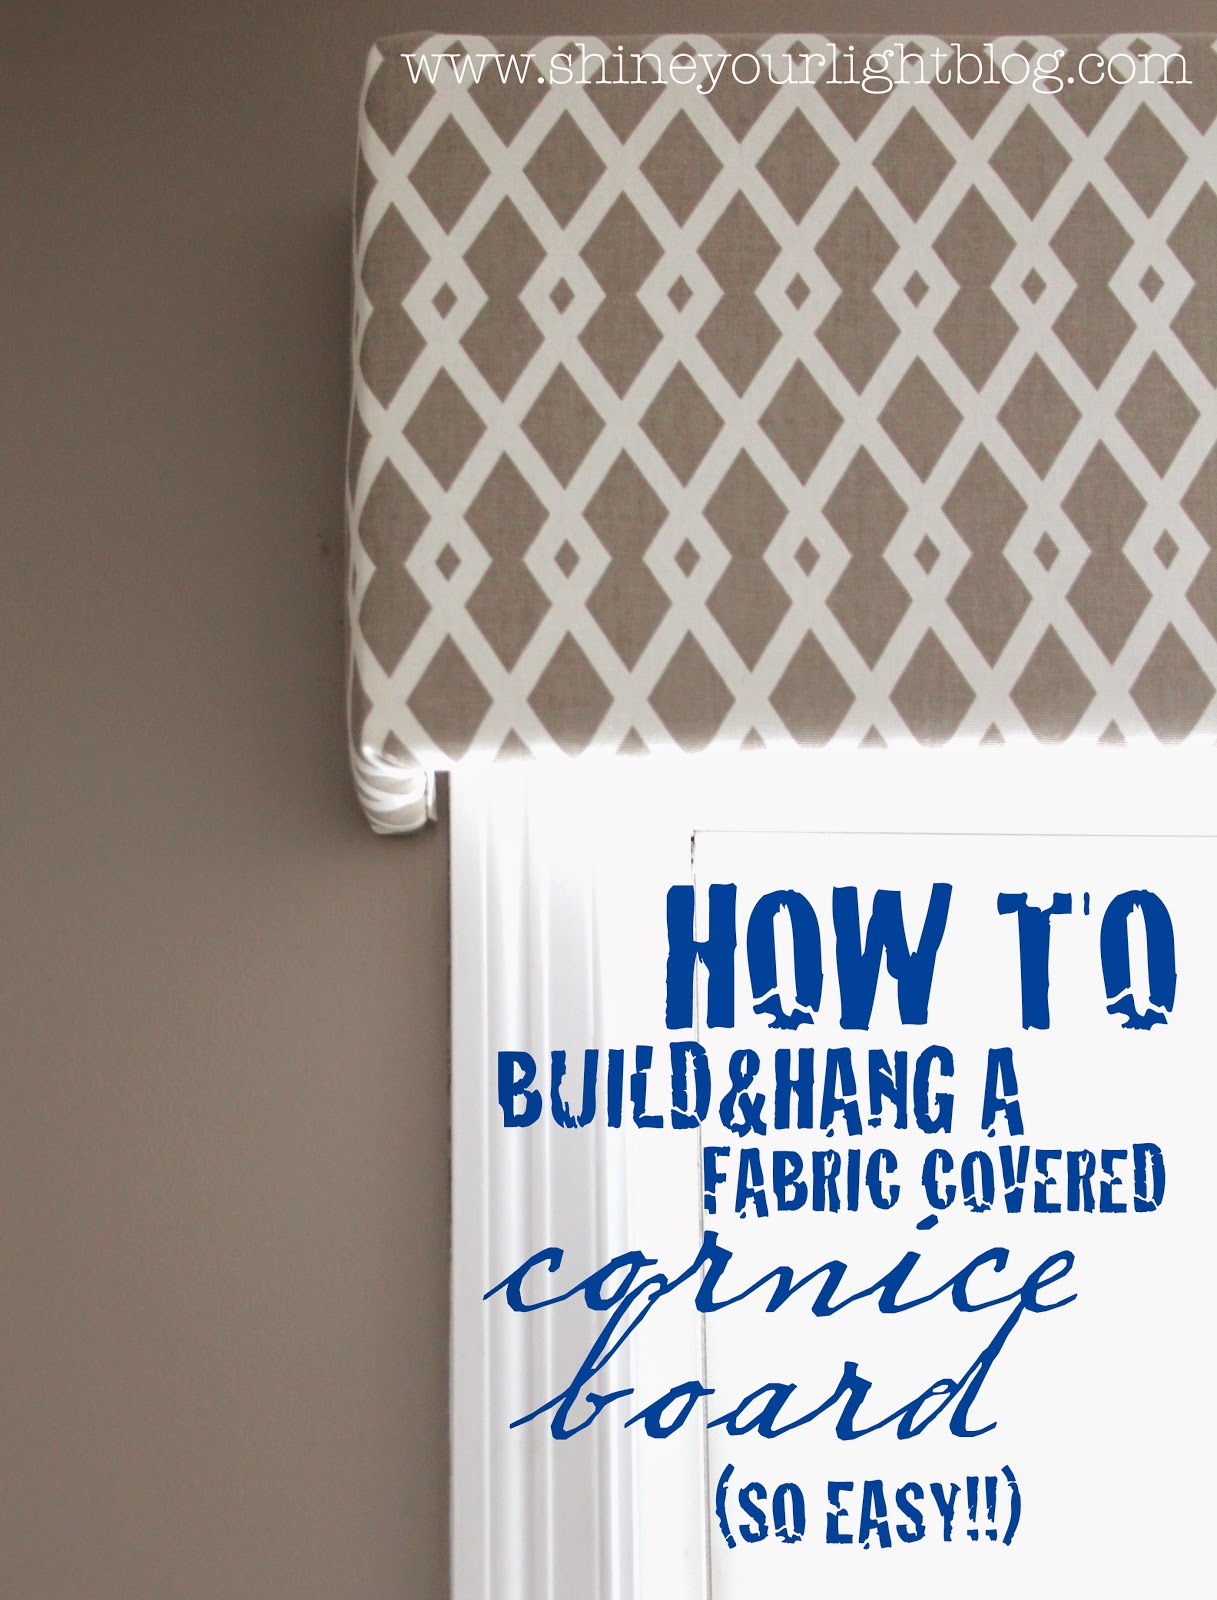 Shine Your Light Fabric Covered Cornice Board Amp How To